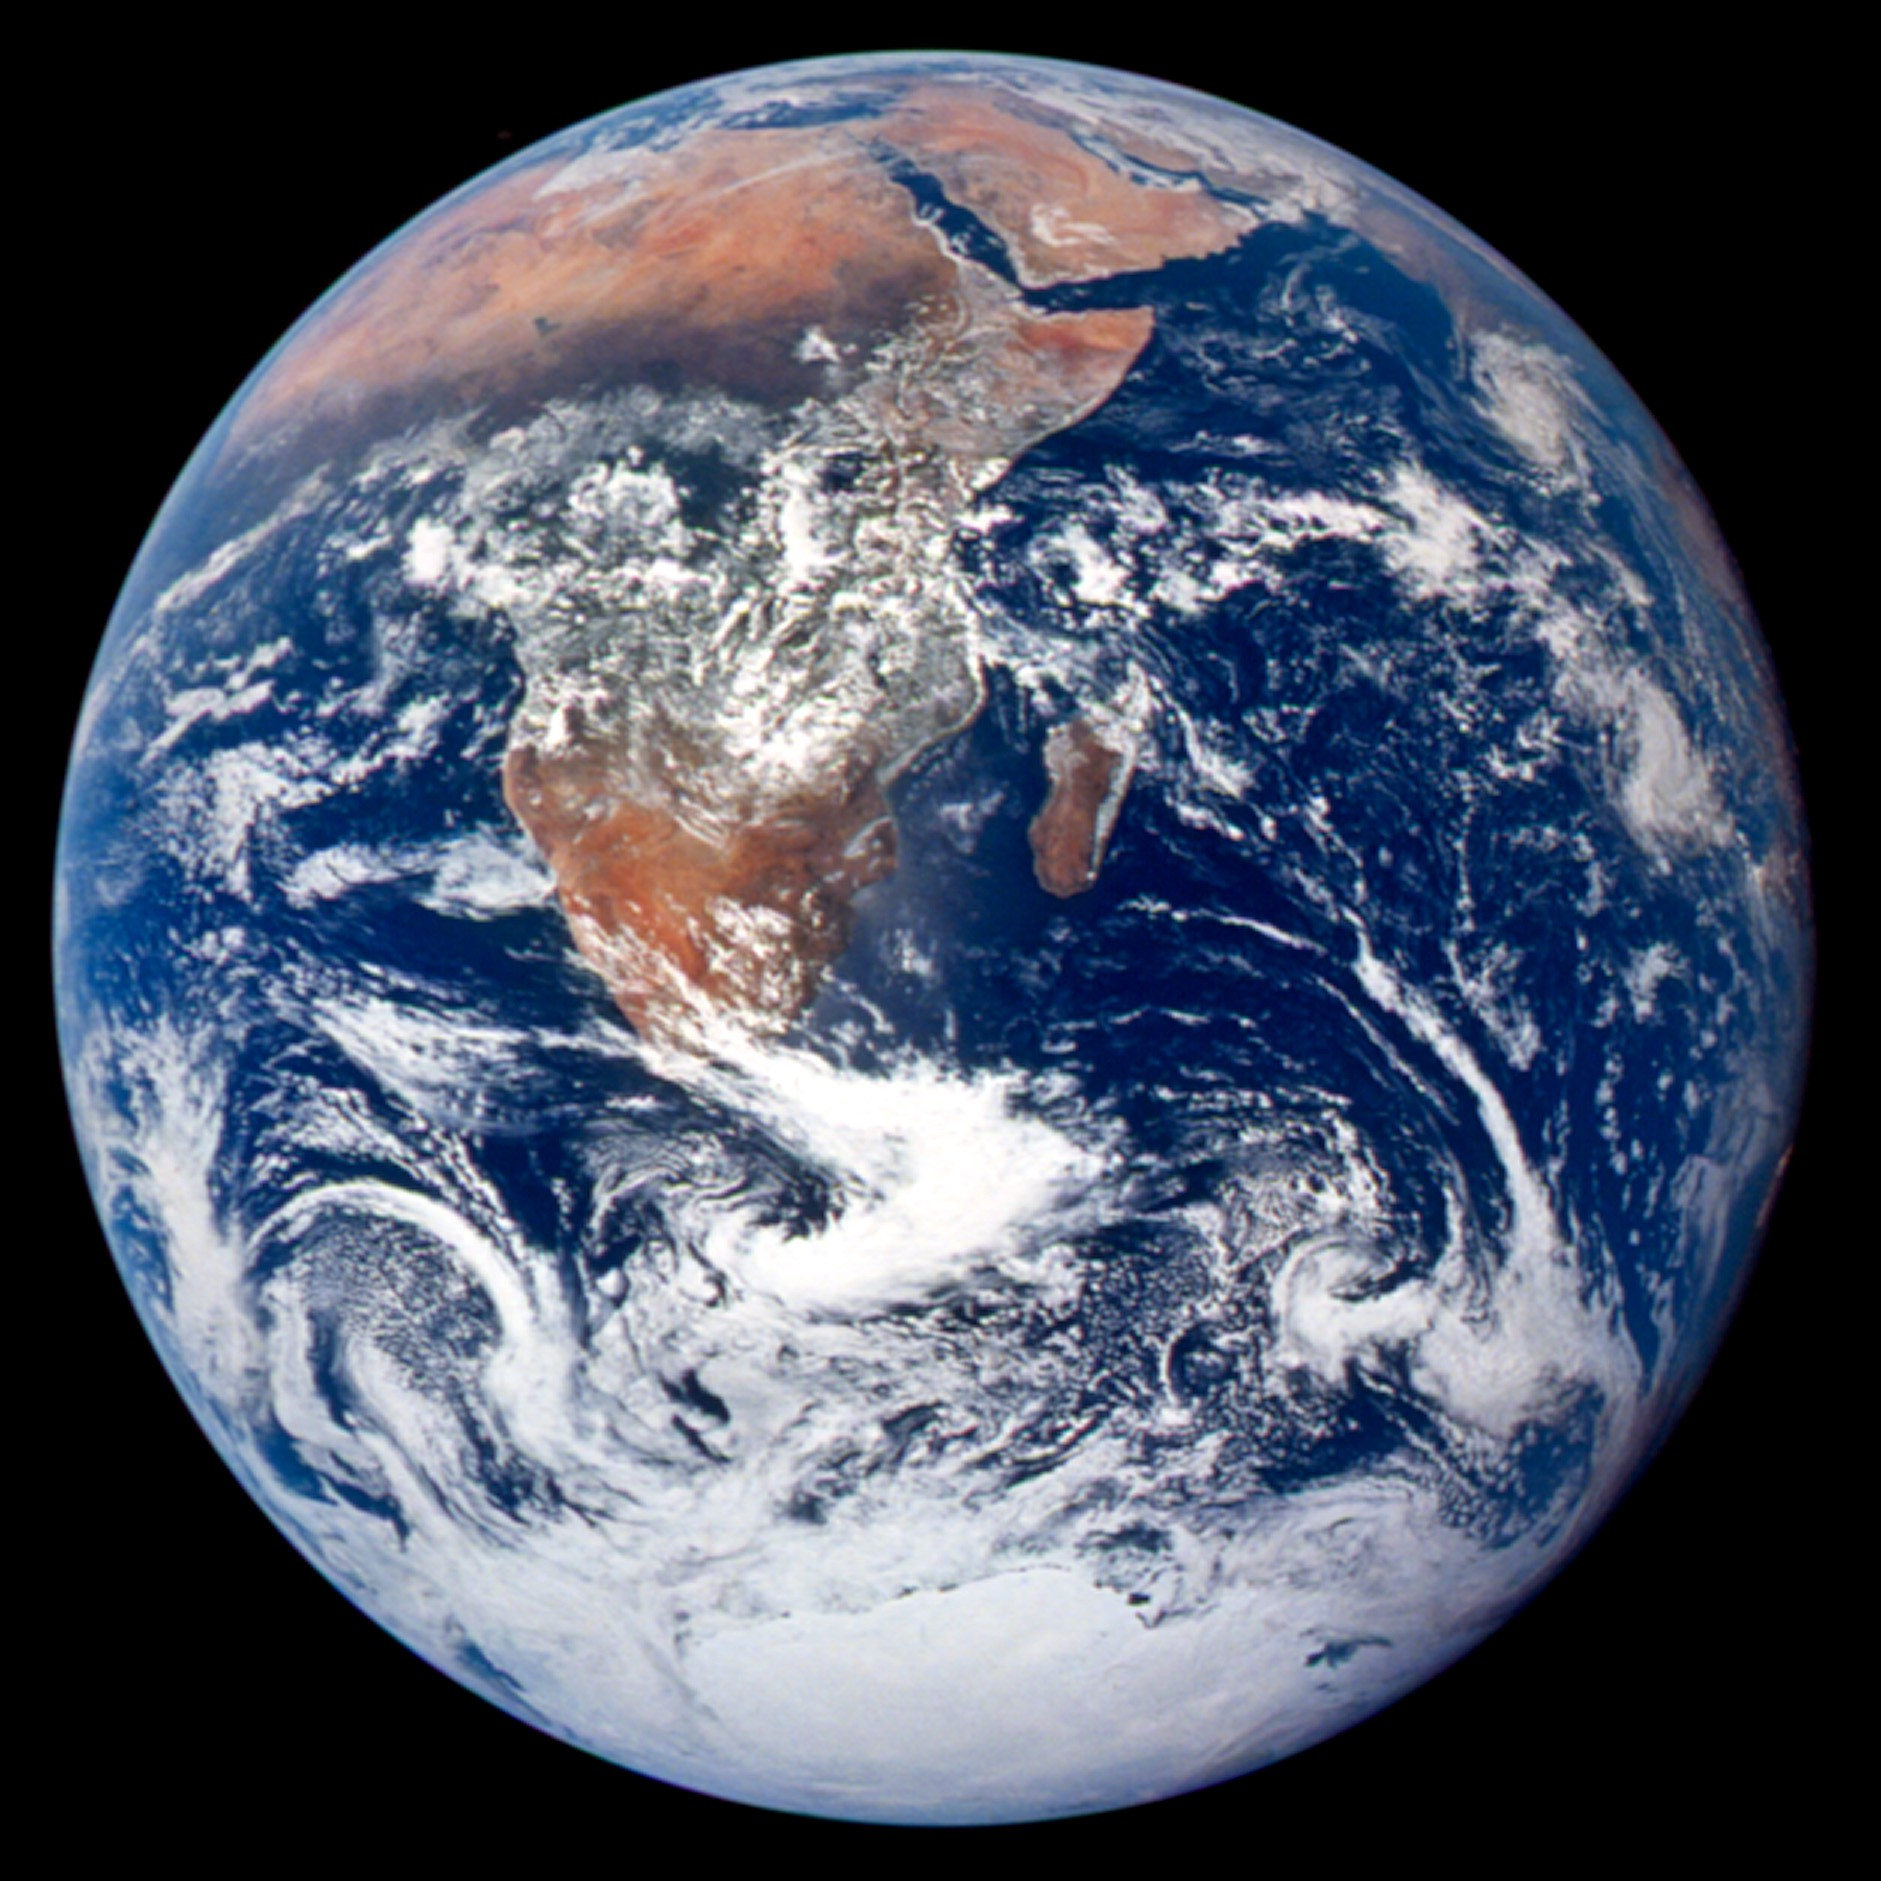 Image of the Earth as seen from space. Photo captured by Apollo 17 astronauts in 1972.